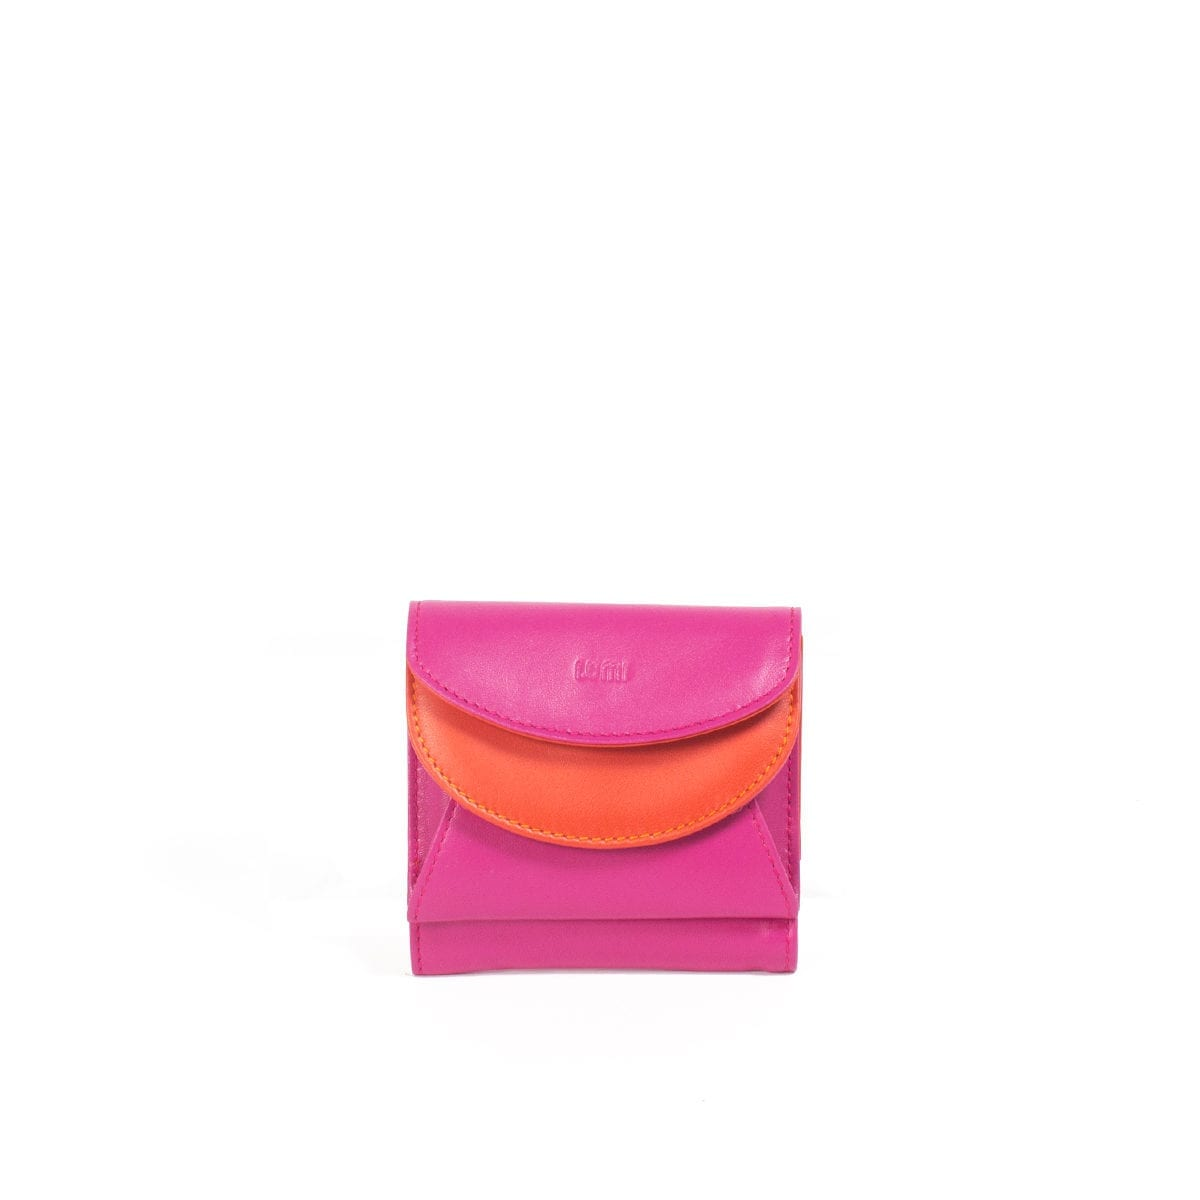 LUMI Viivi Trifold Wallet, in pink/coral.